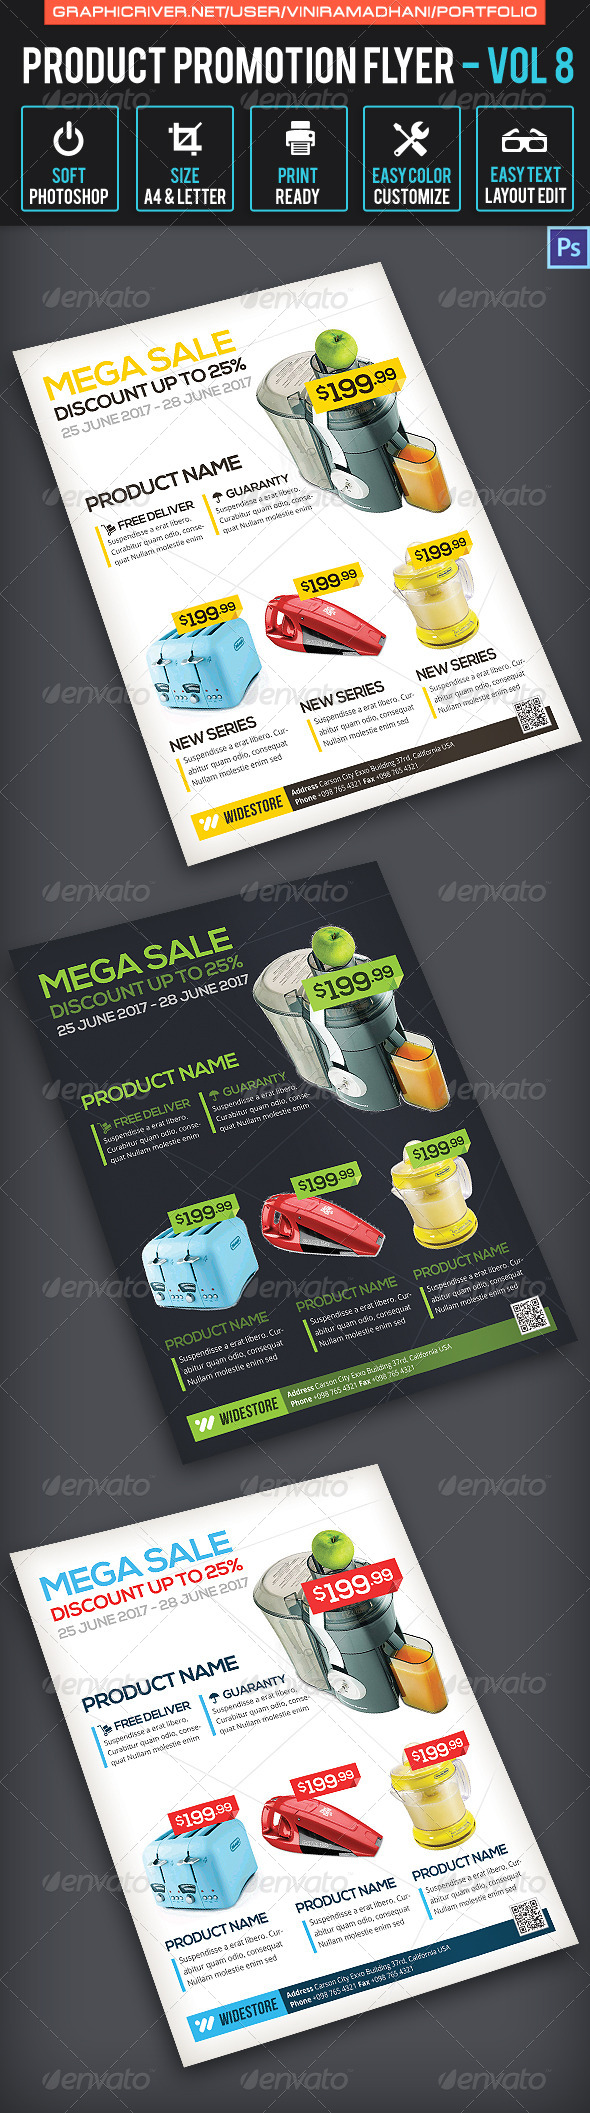 GraphicRiver Product Promotion Flyer Volume 8 6760956